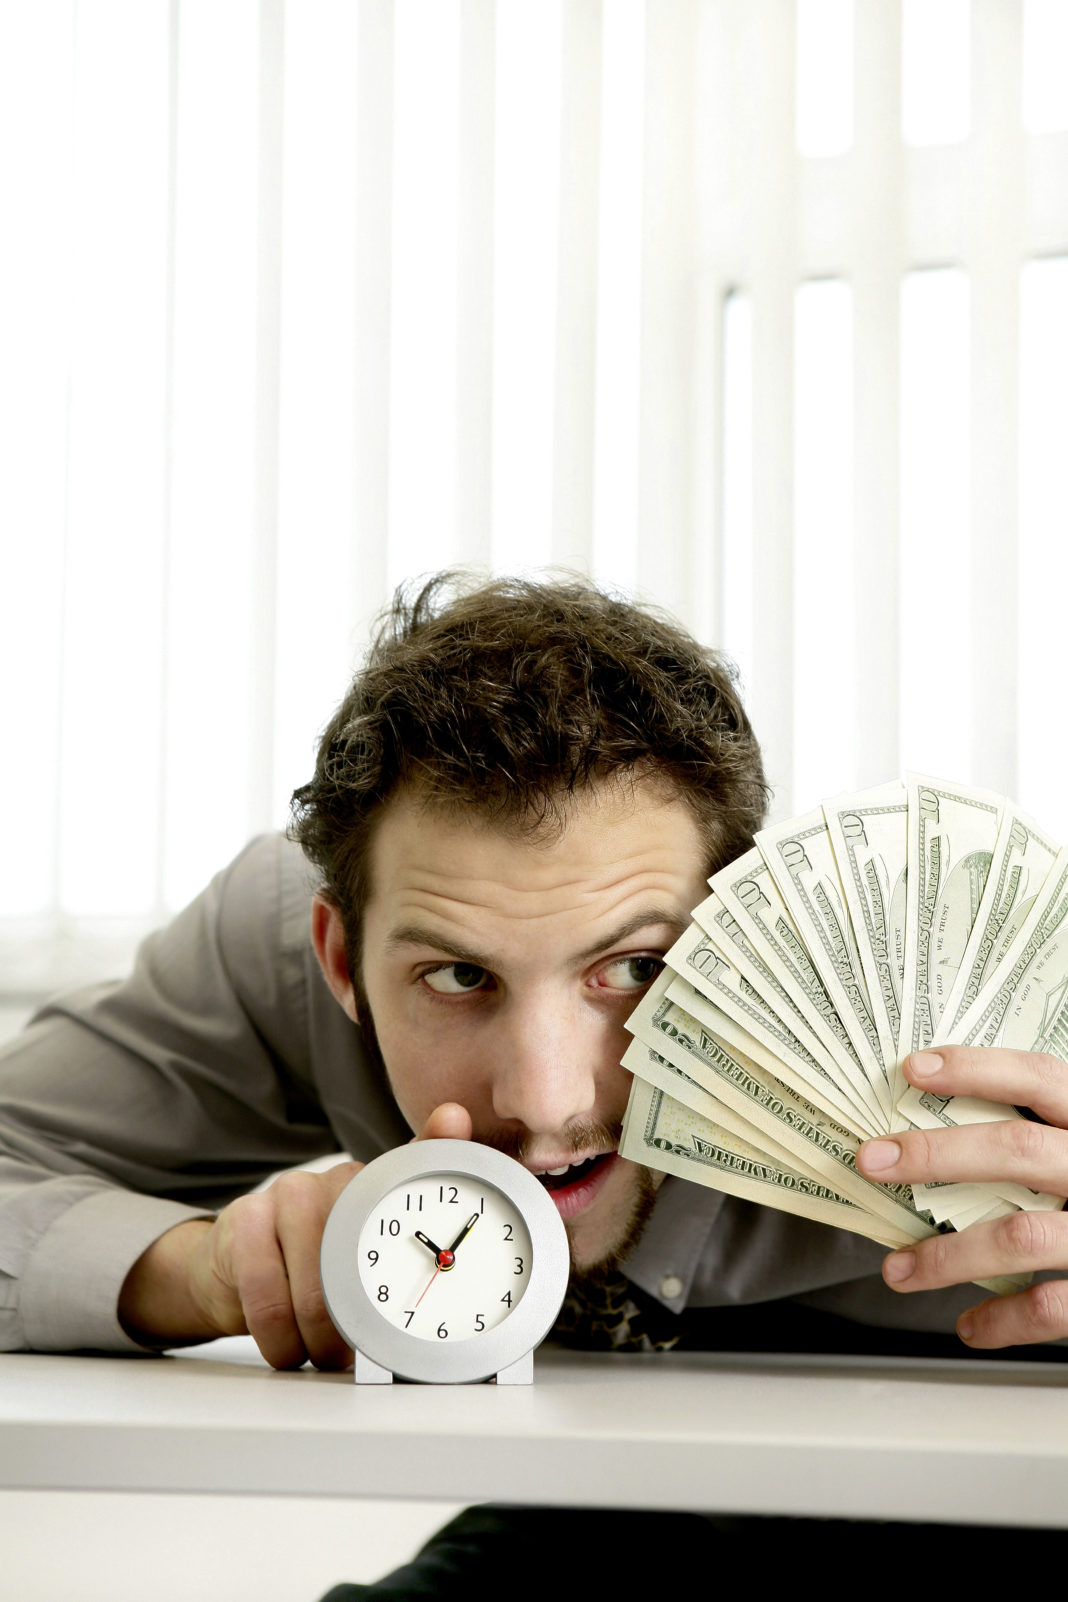 Employee Compensation: Time or Money